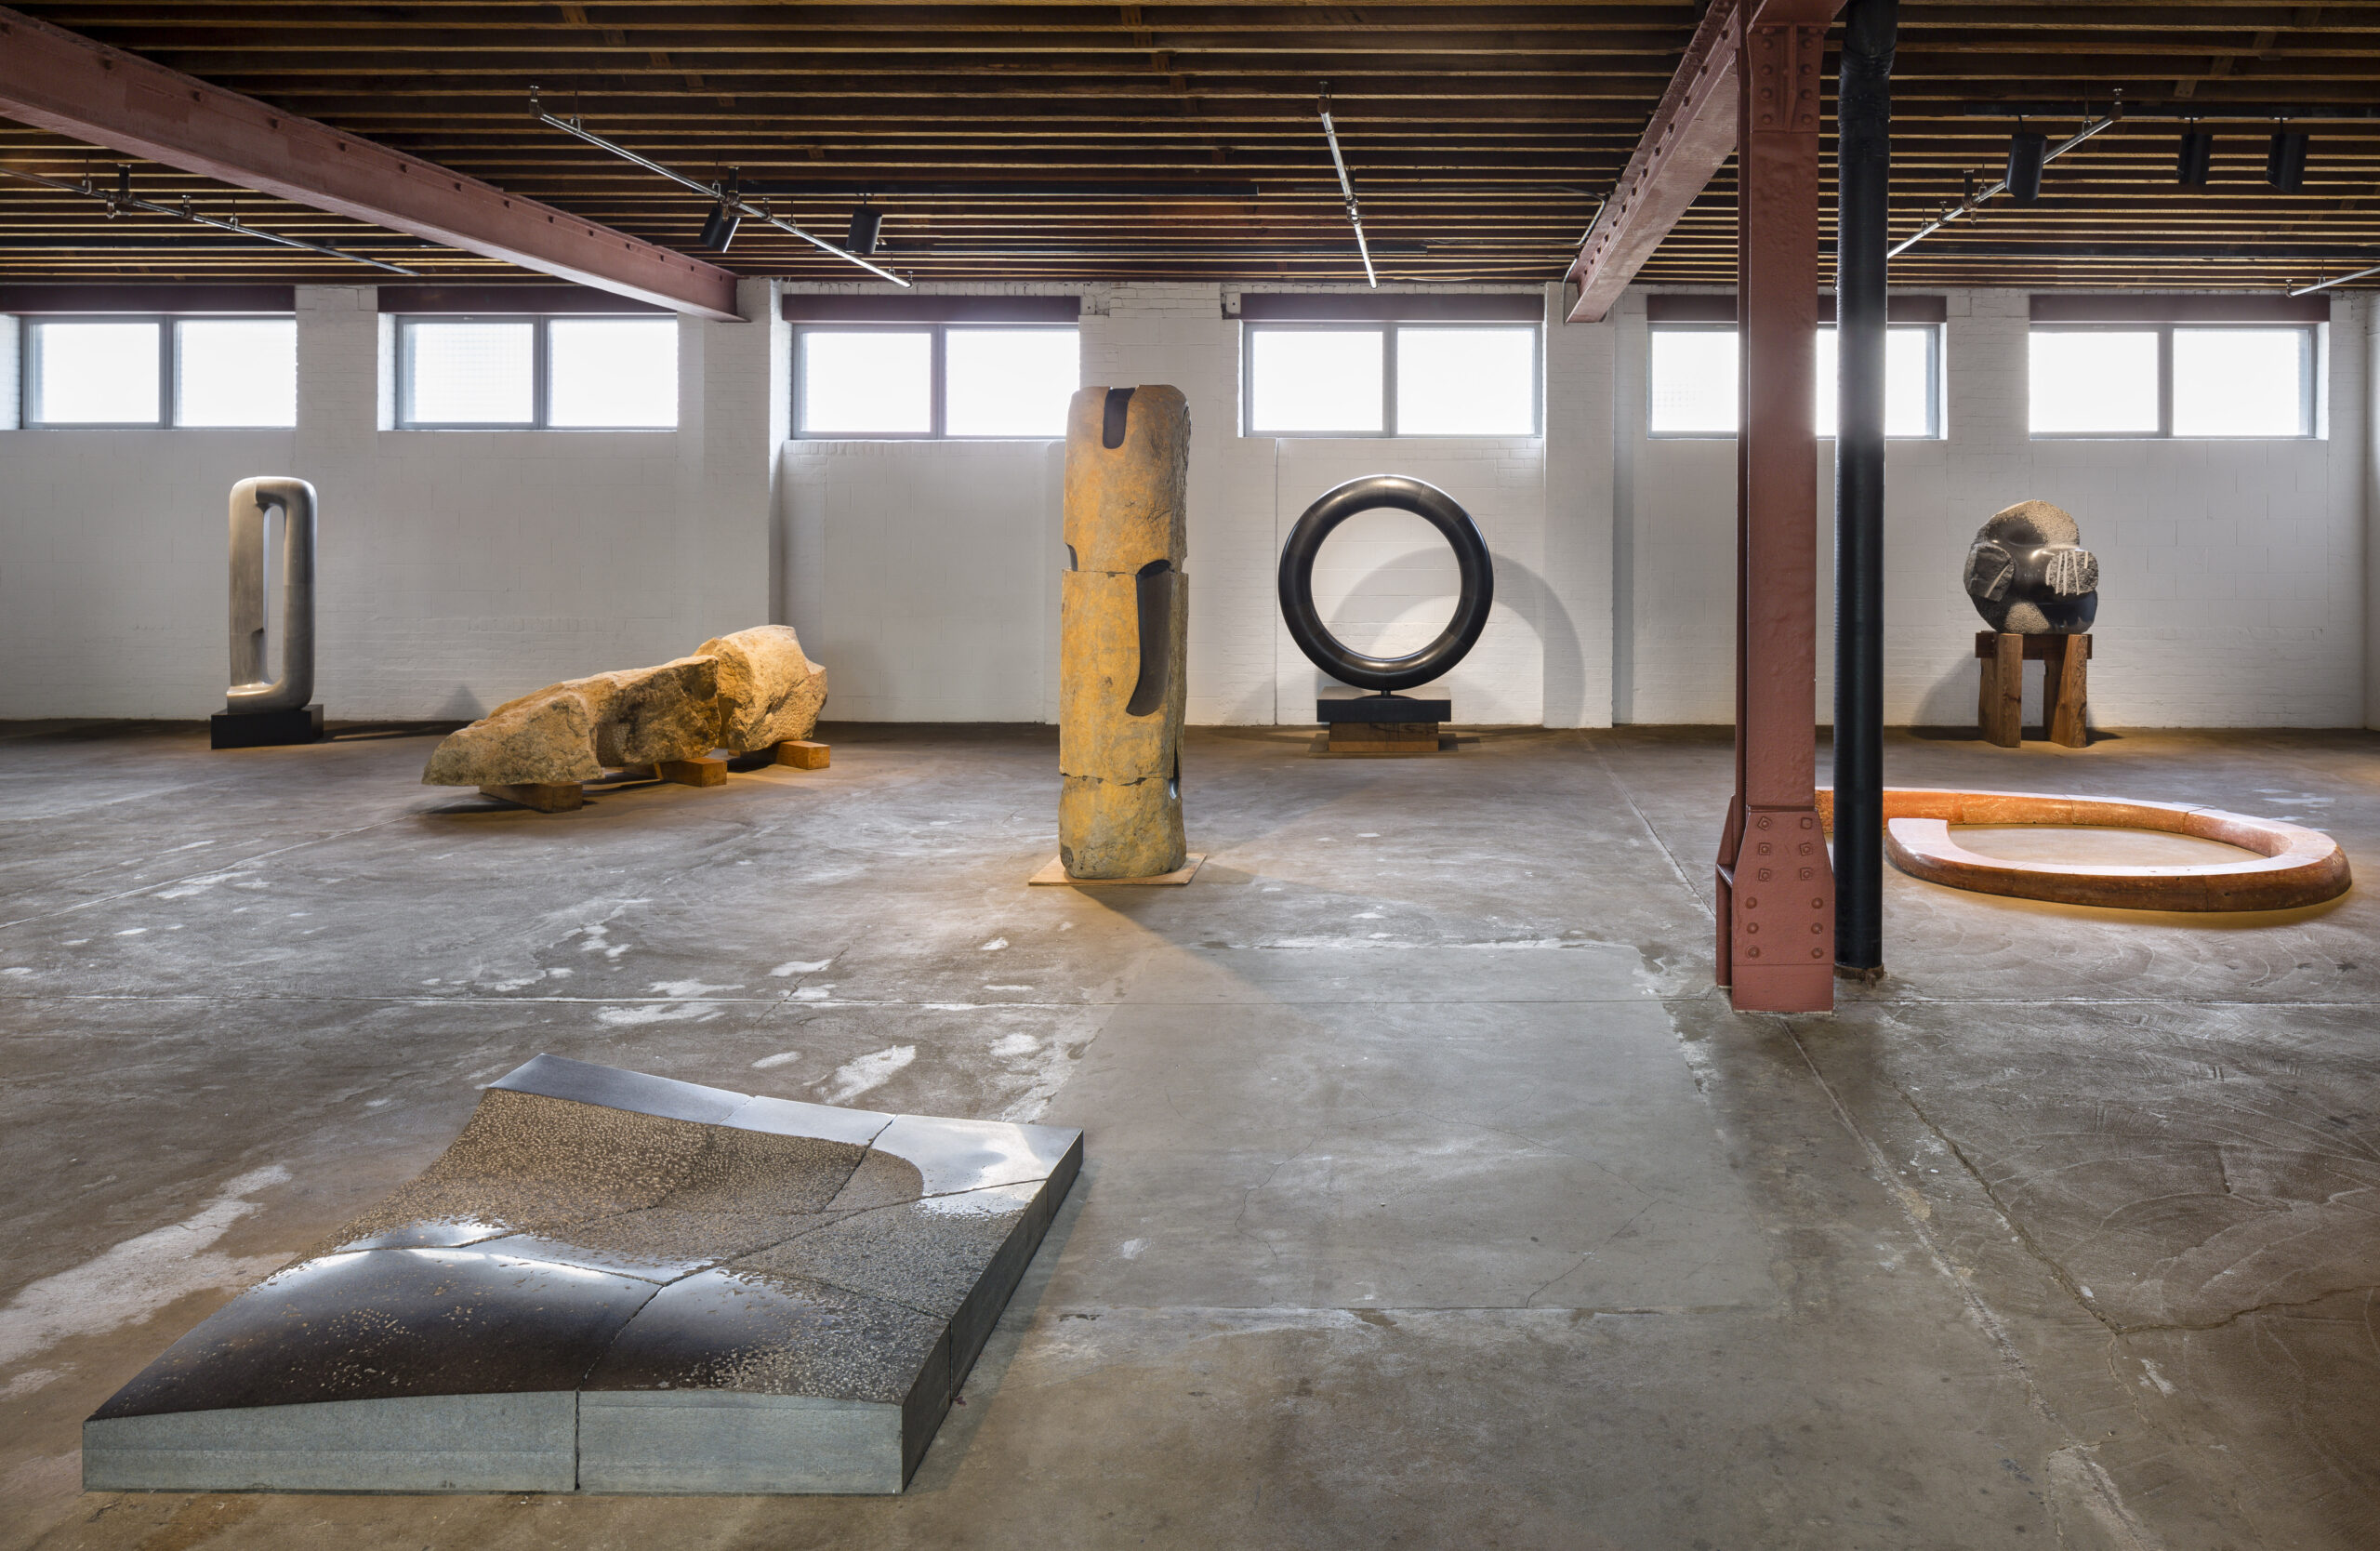 Interior industrial gallery space filled with stone sculptures in geometric and organic shapes.